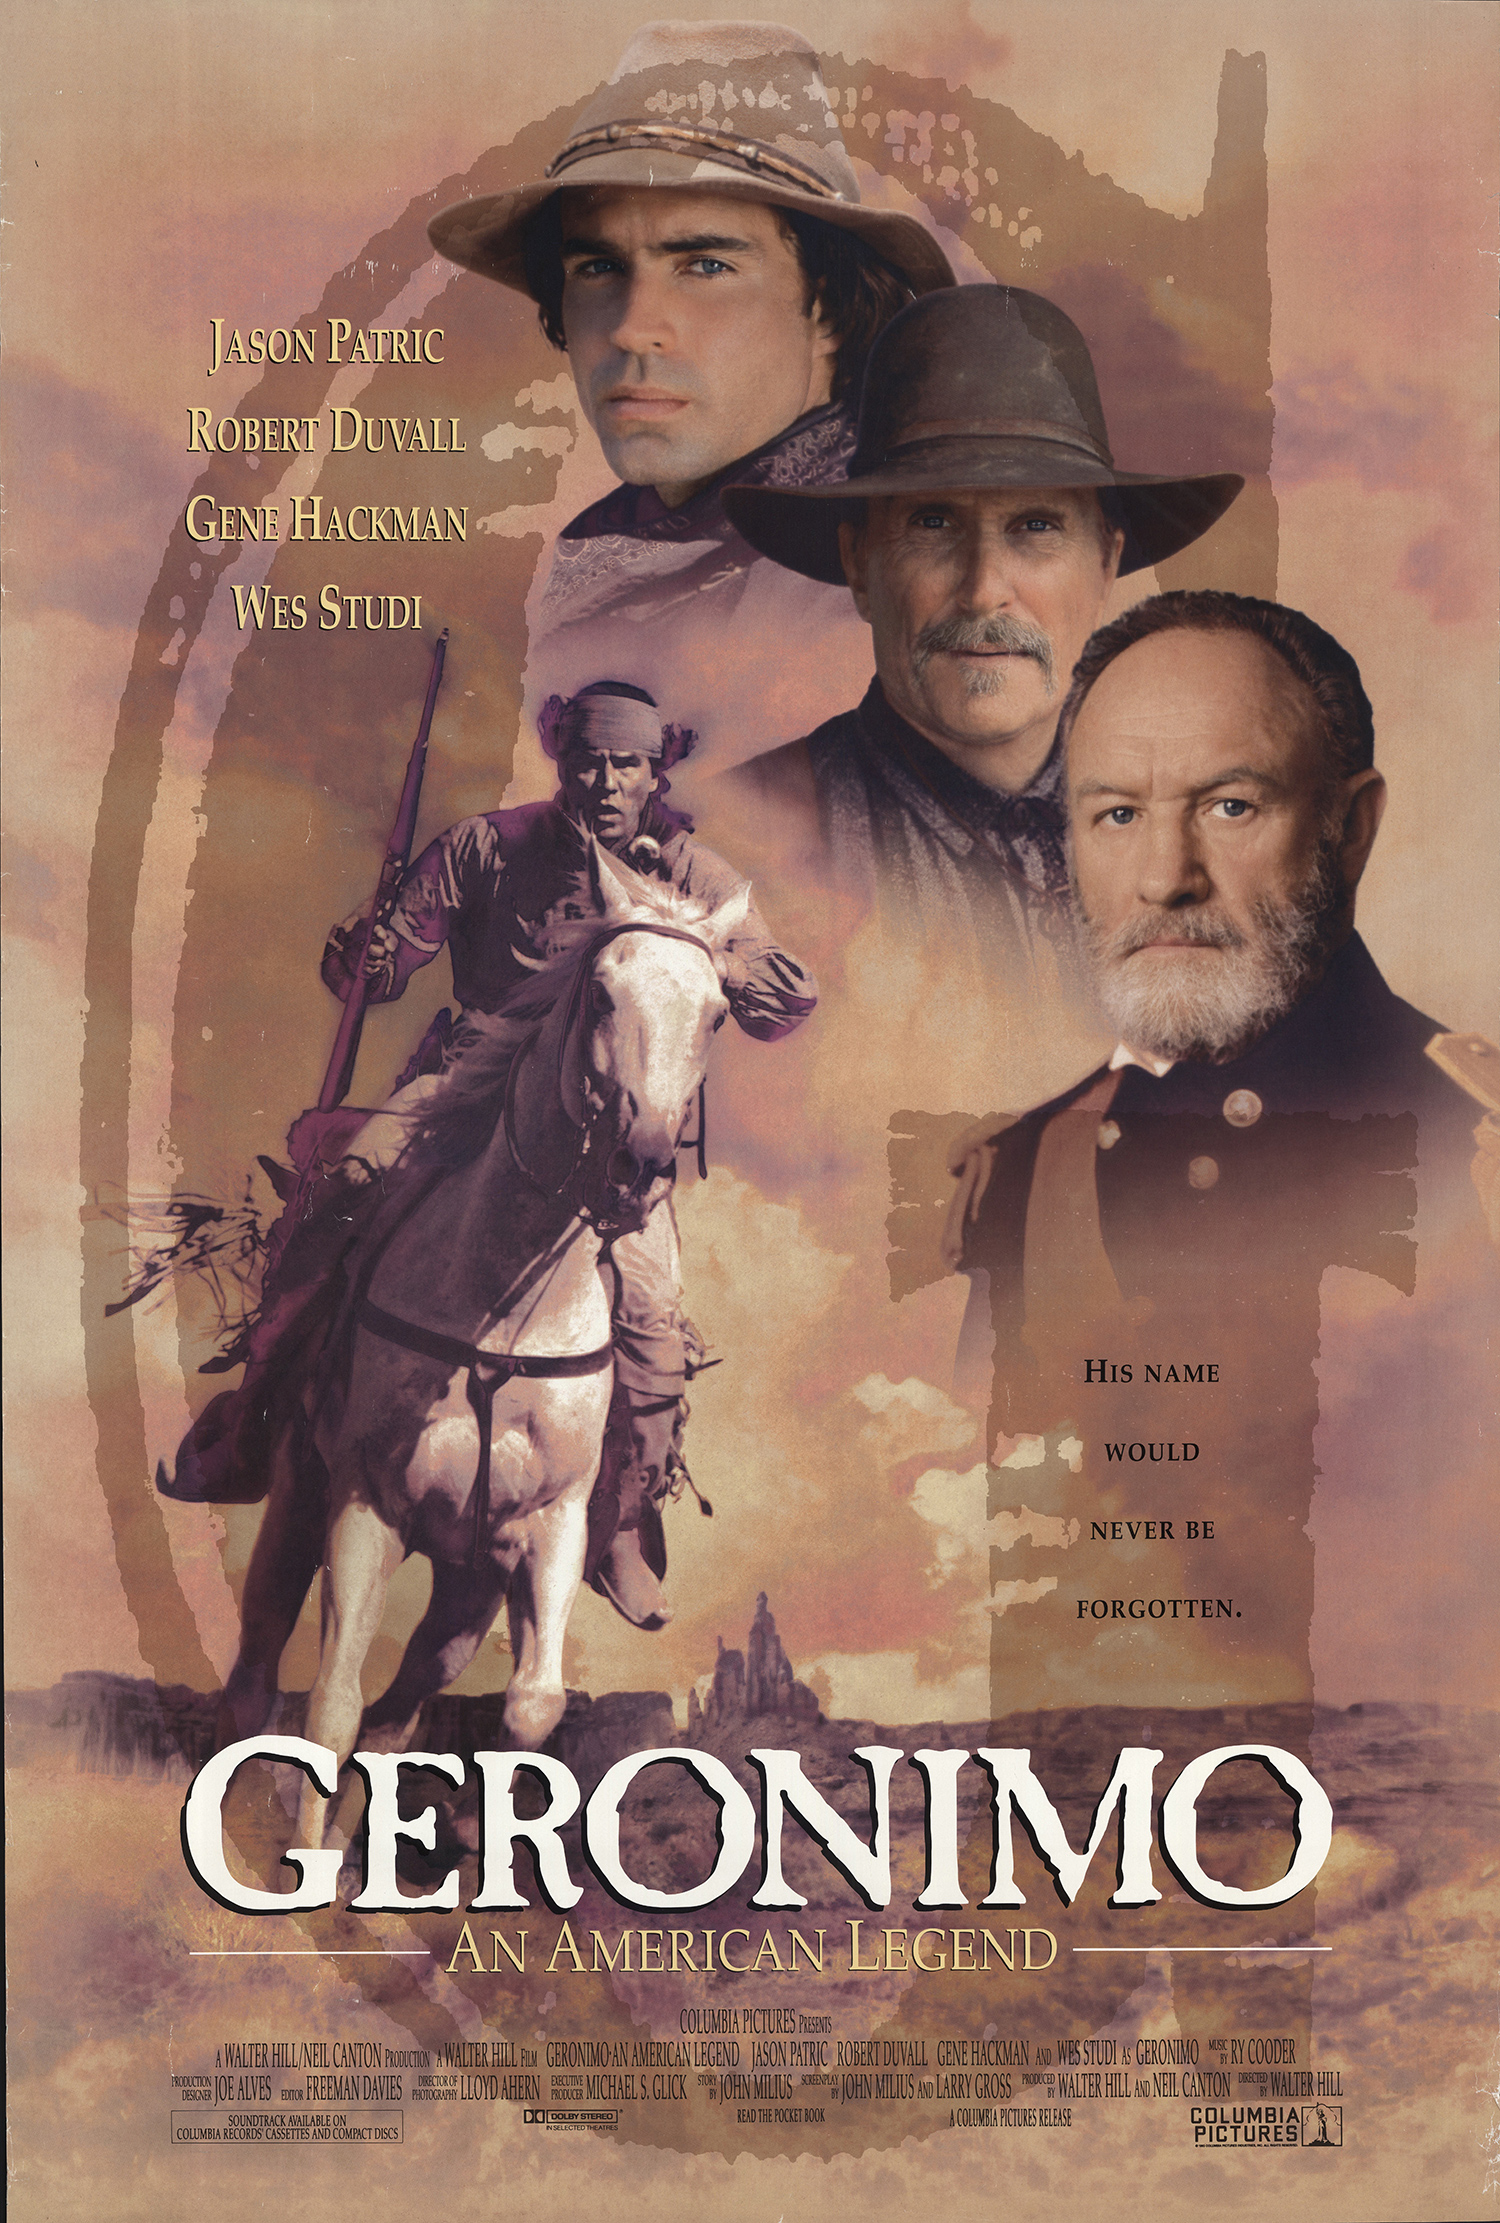 an analysis of the movie geronimo an american legend Watch geronimo: an american legend (1993) movie online the story of the apache chief and his armed resistance to the us government's subjugation.